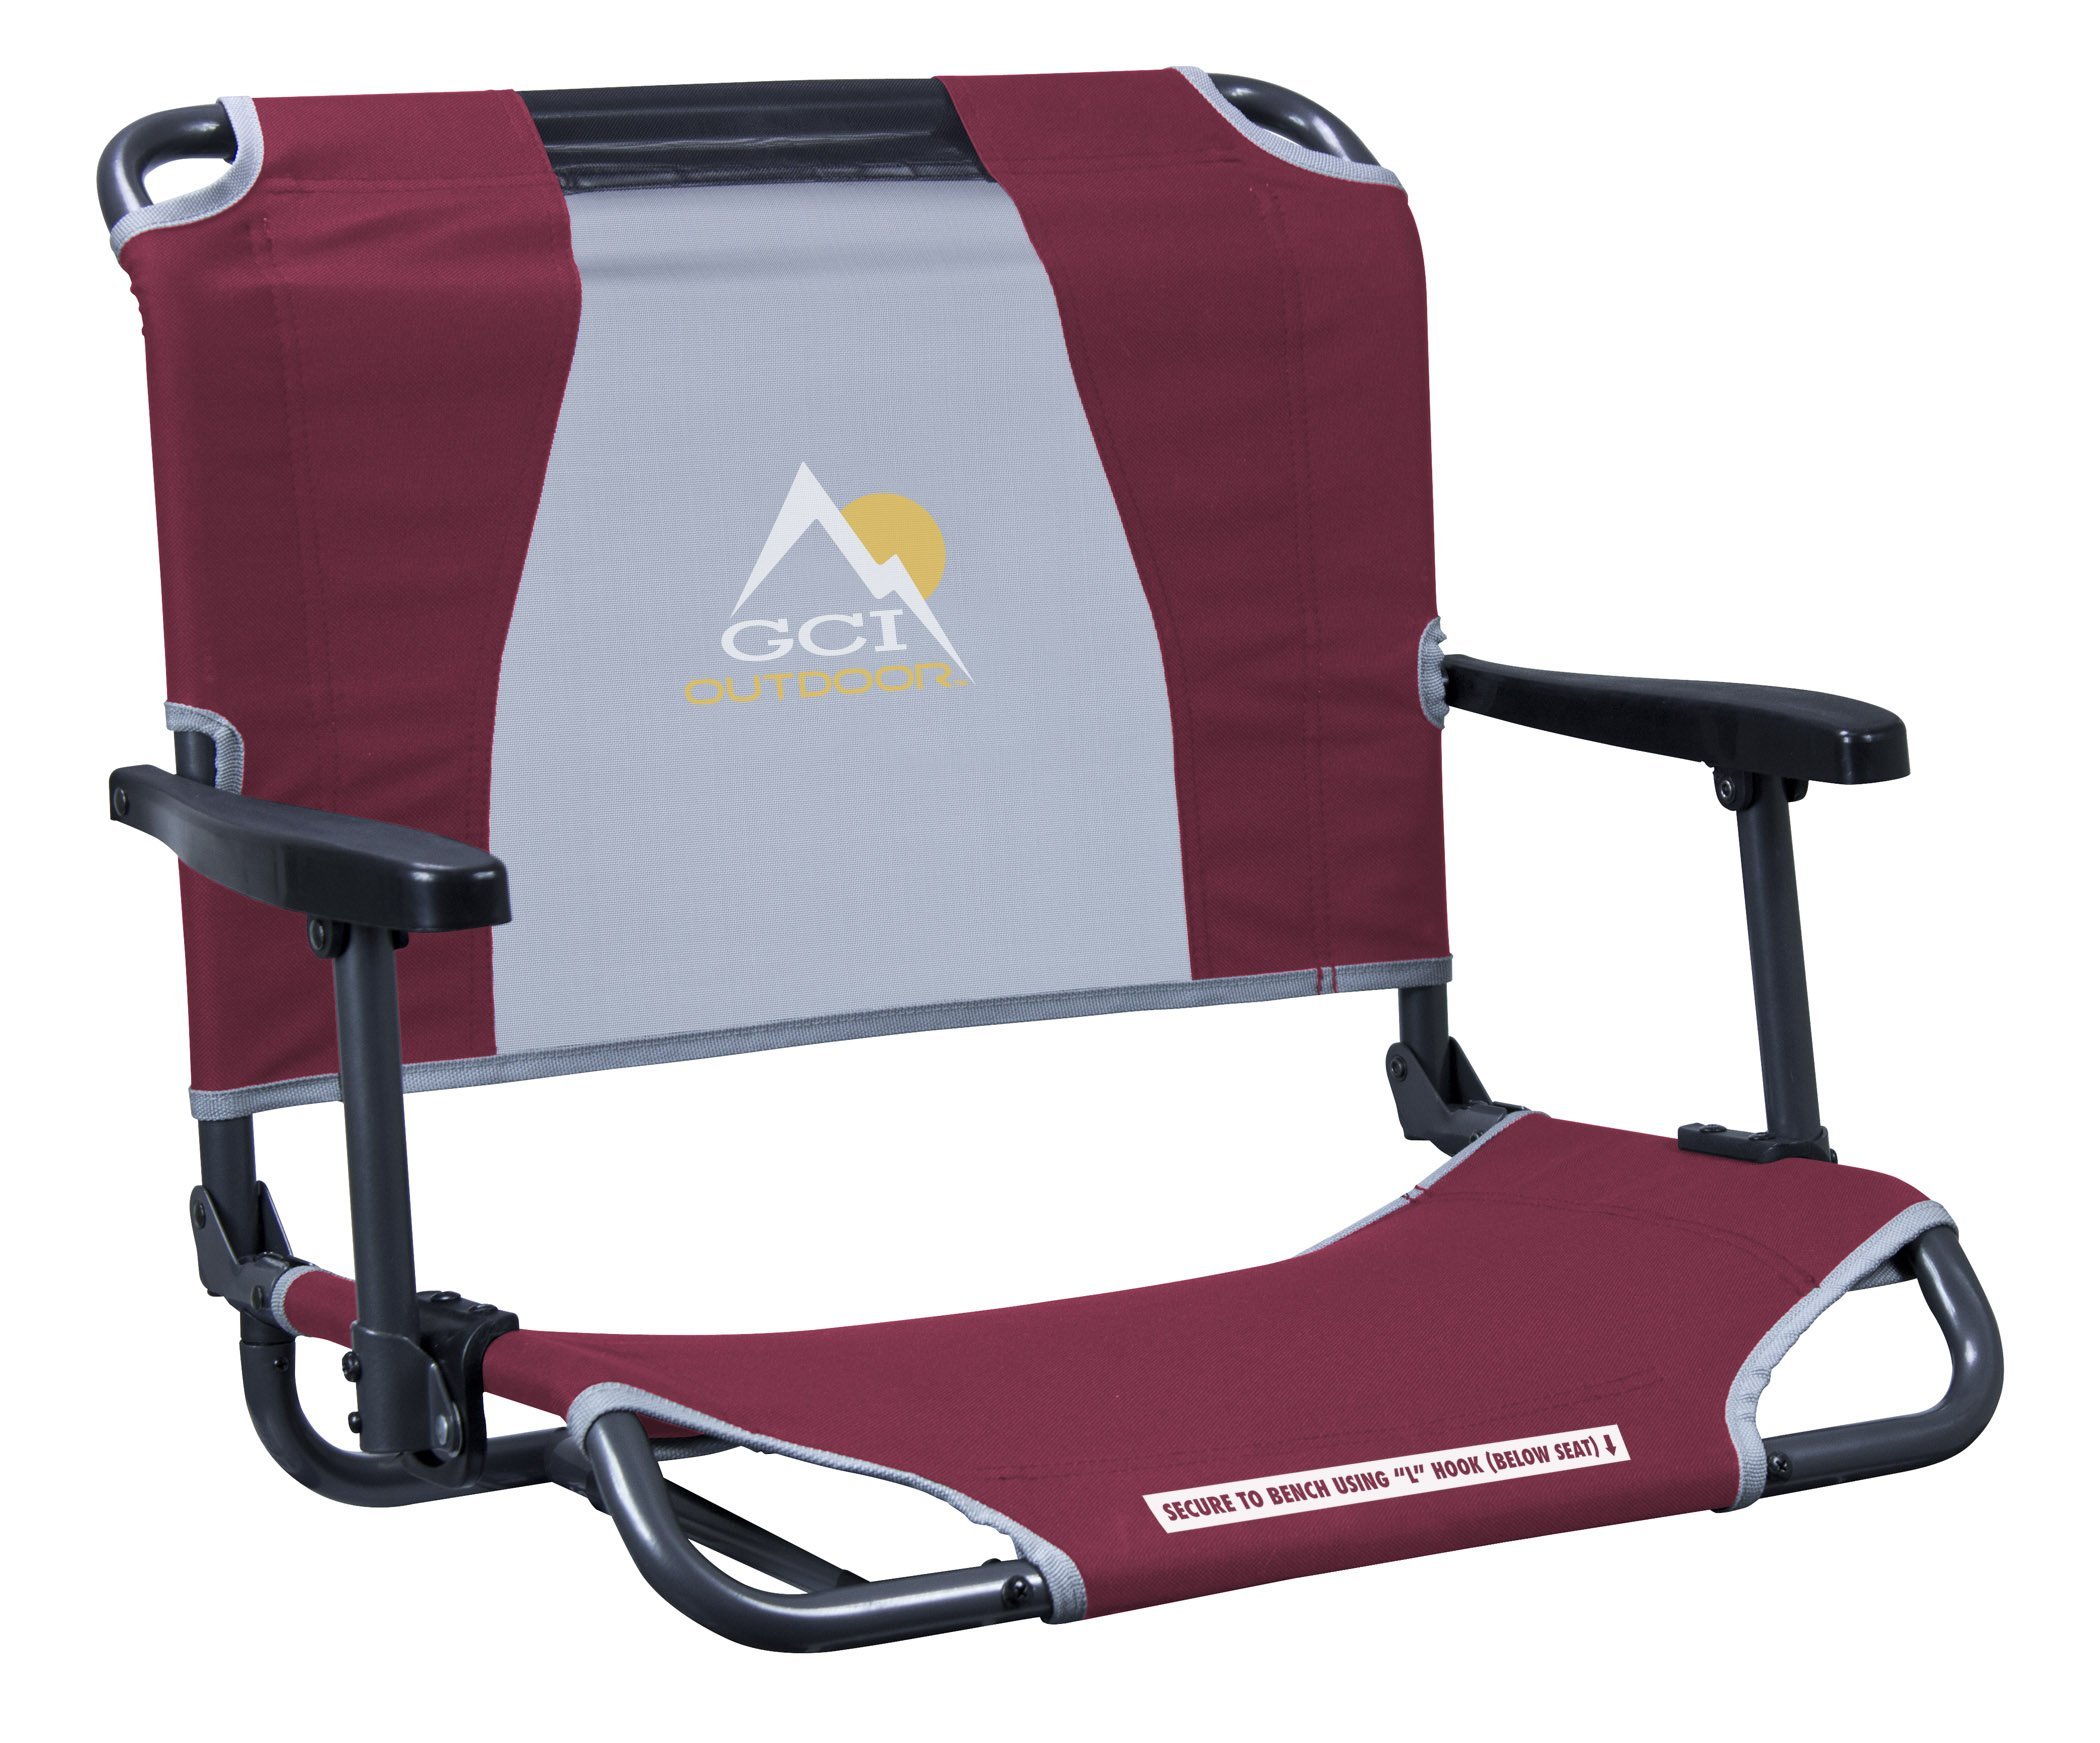 GCI Outdoor Big Comfort Wide Stadium Bleacher Seat with Back and Armrests, Maroon